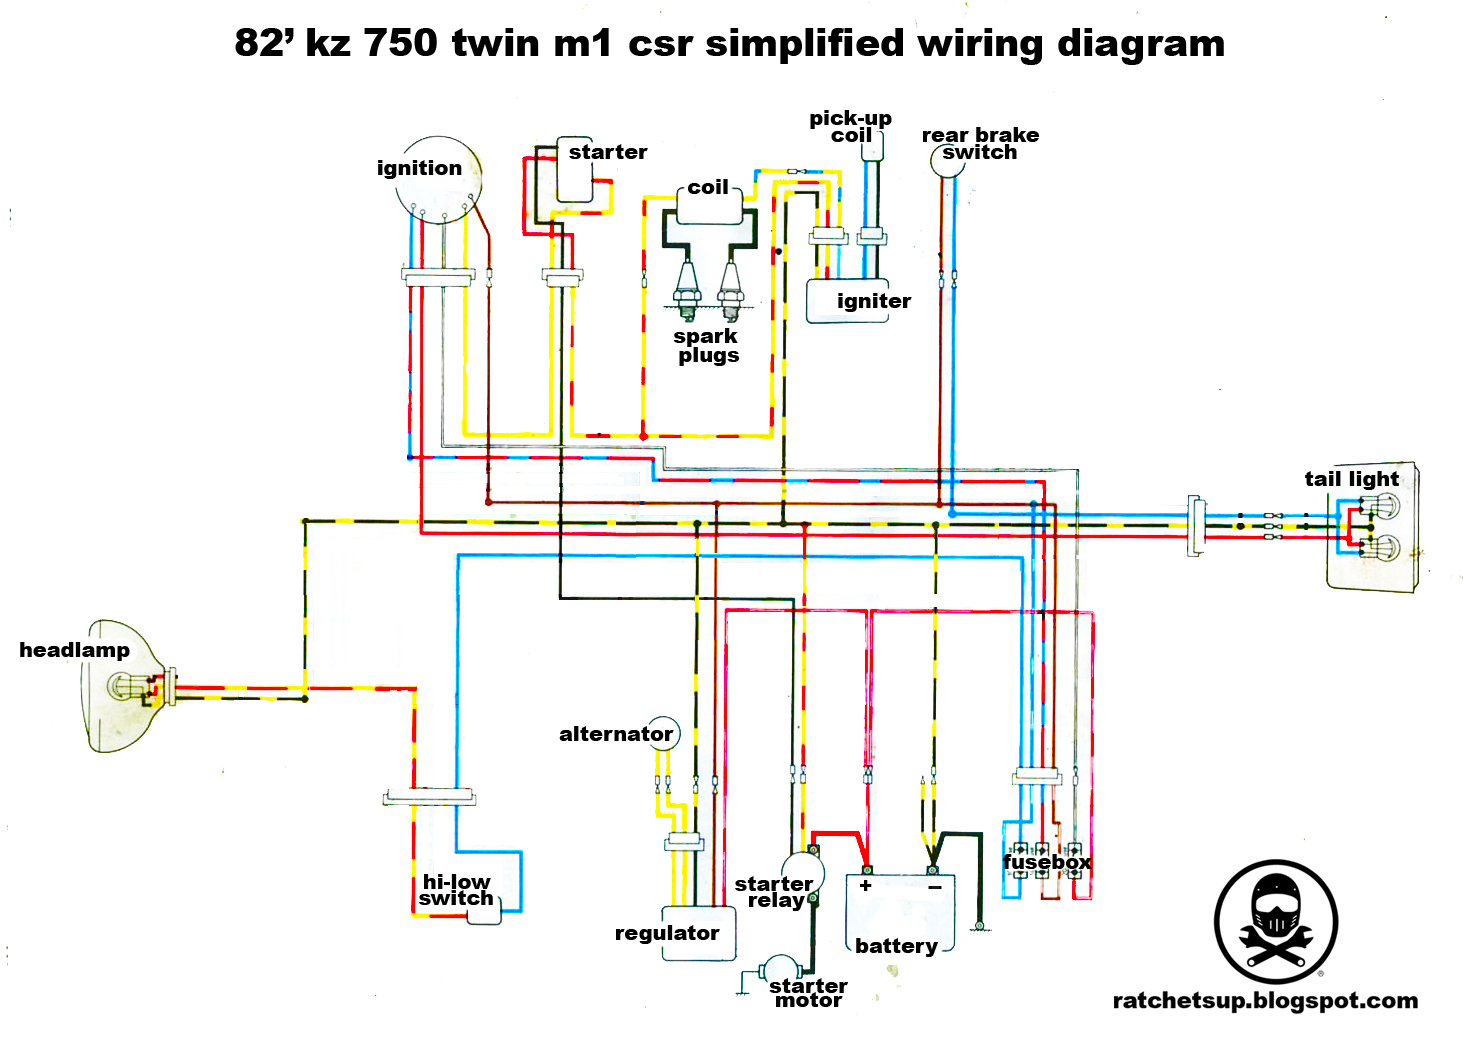 kz750+simple+diagram kz400 wiring diagram 1983 kawasaki motorcycle wiring diagrams  at bakdesigns.co